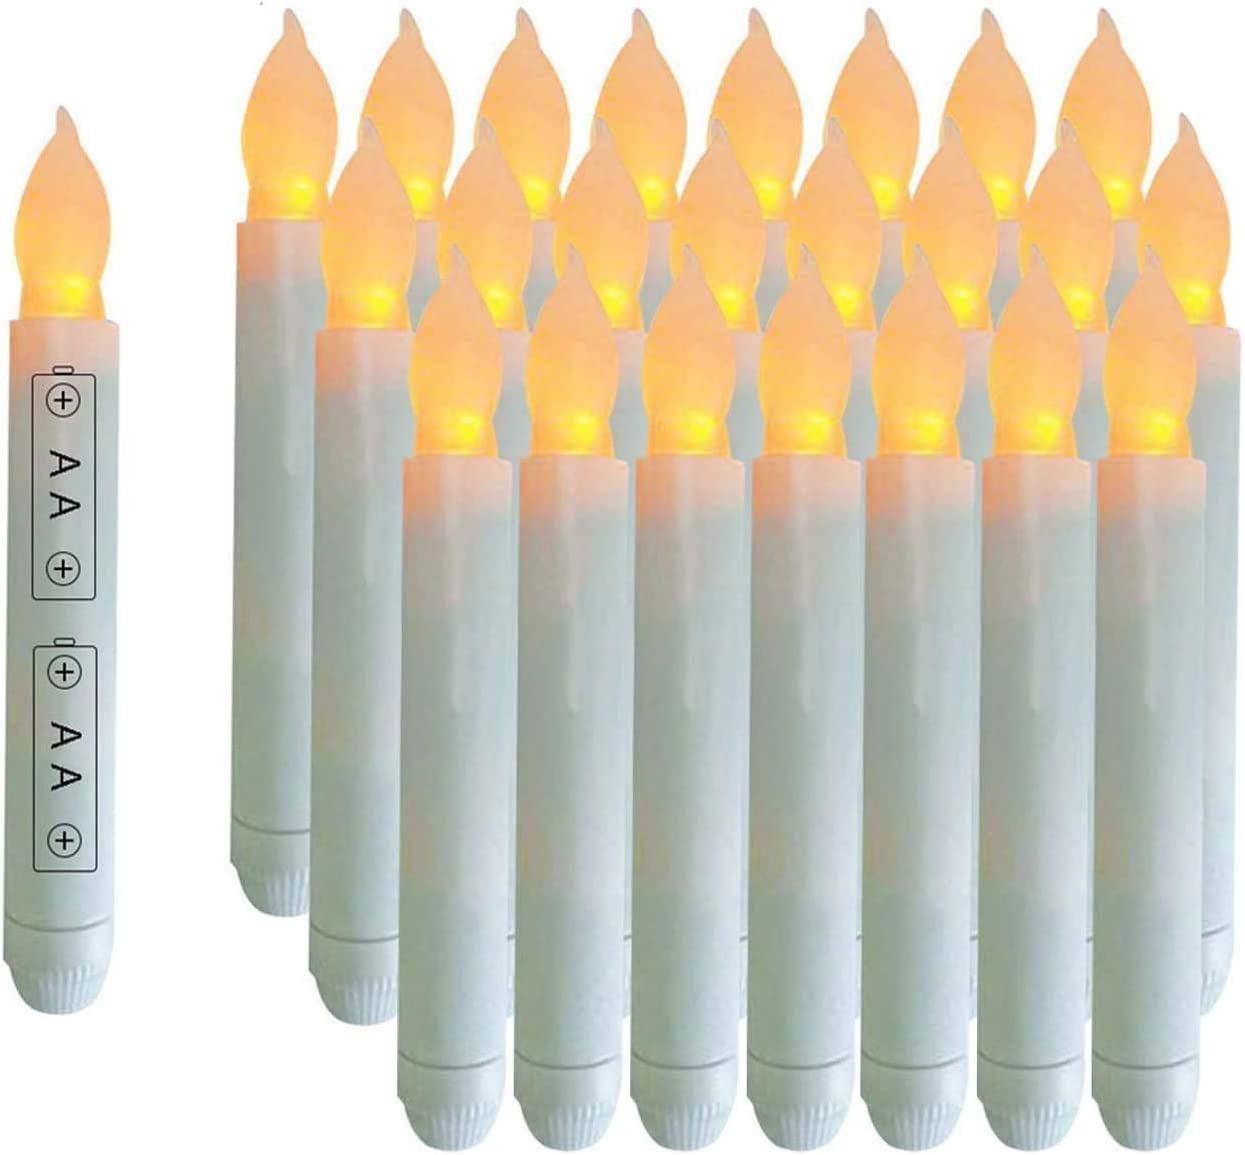 Houdlee Pack of 24 Flameless Taper Candles Battery Operated Flickering Ivory Led Candle for Christmas Wedding Party Candelabra Flicker Amber Taper Candles Table Centerpiece – 6.5 Inch Candle